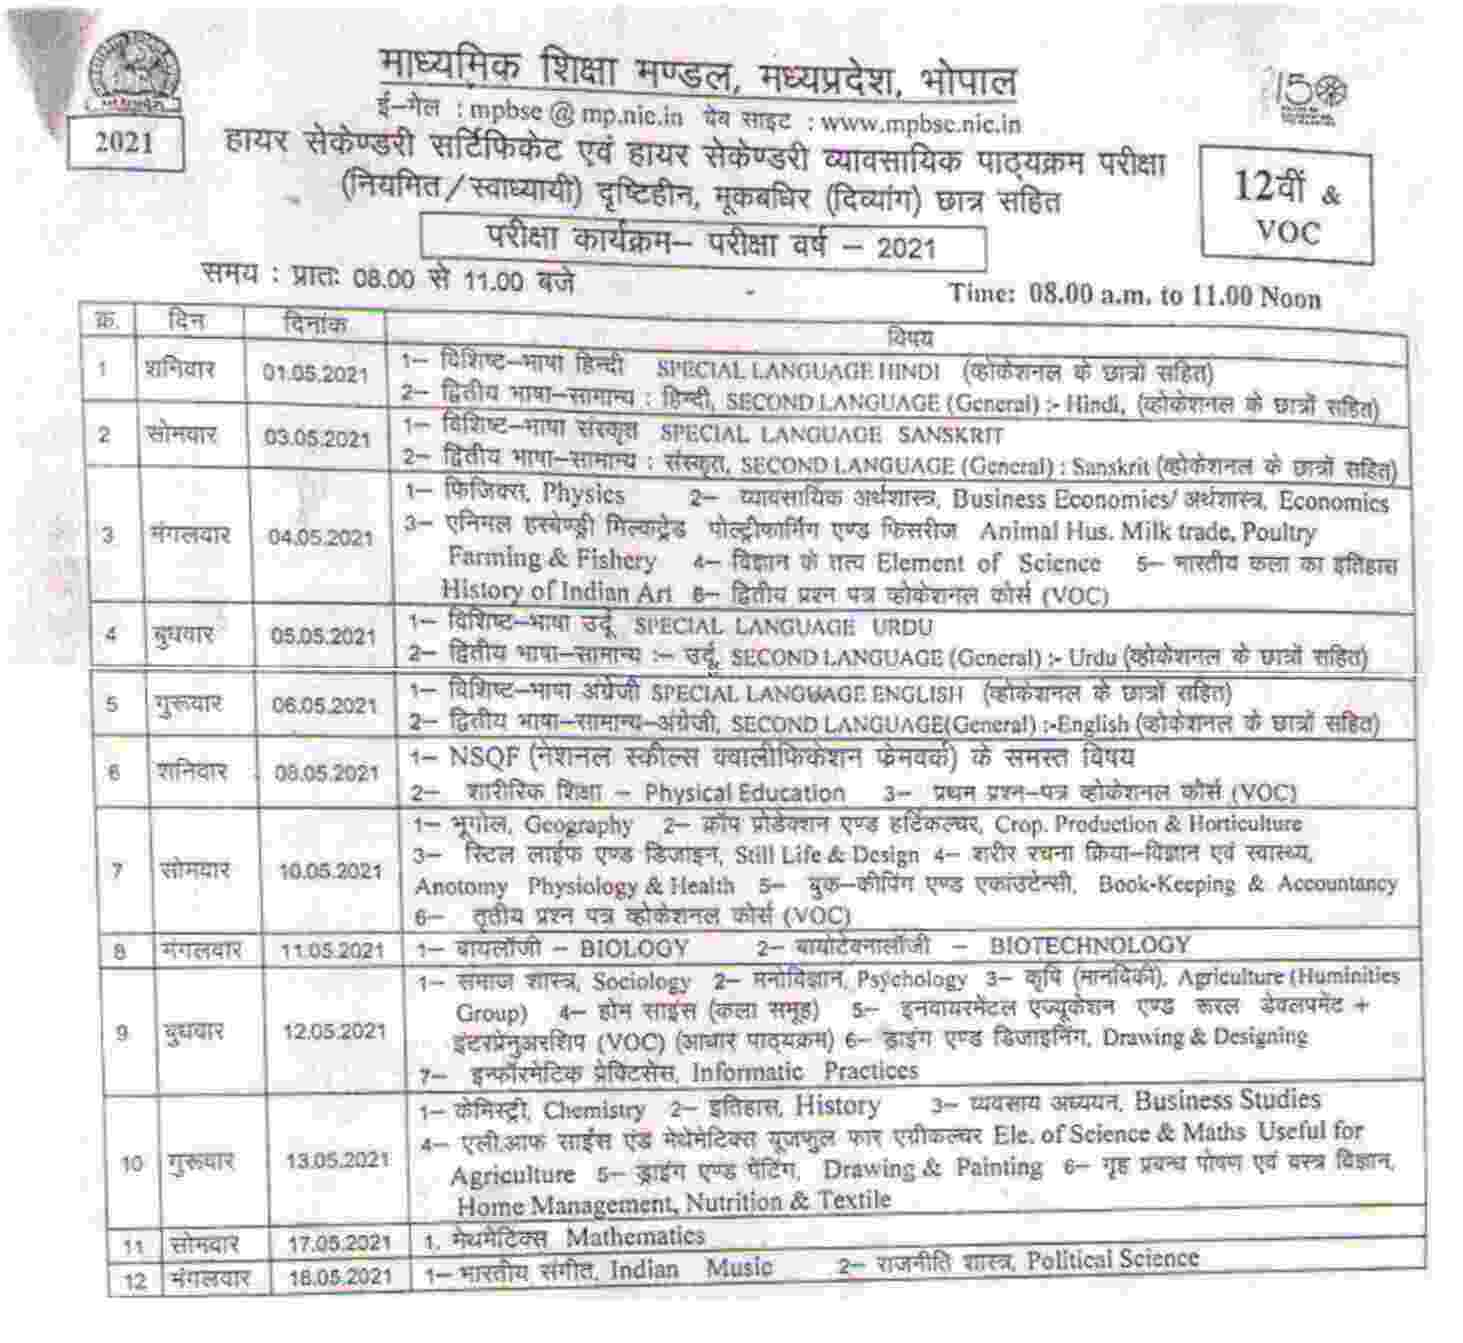 MP Board Time Table 2021 Class 12th Commerce, Science, Arts